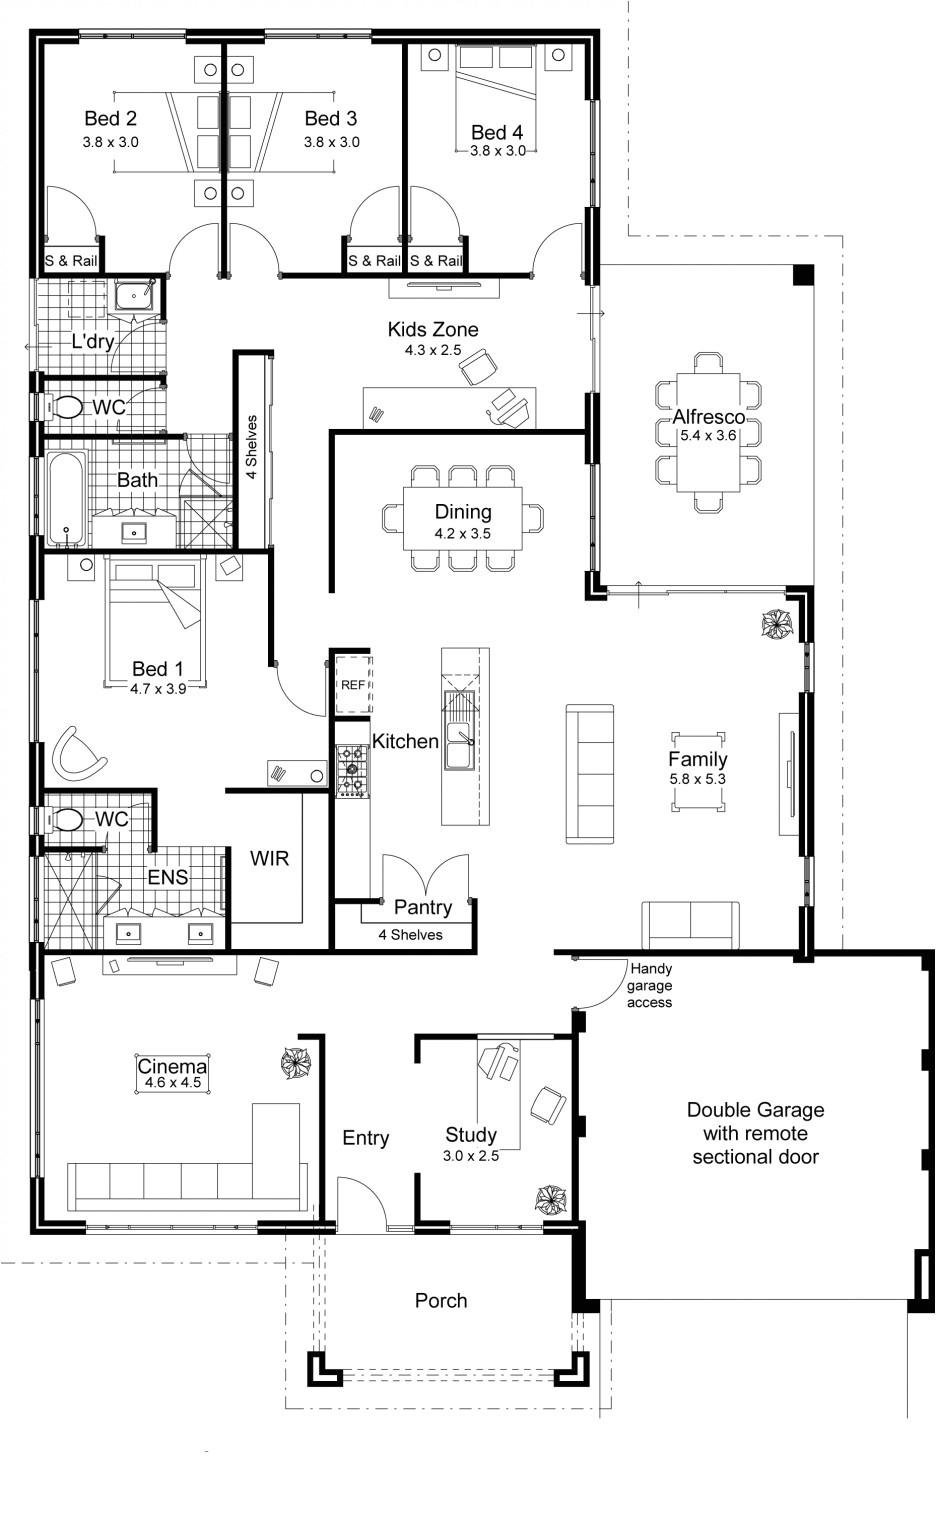 picture of open floor plan house designs finished with best design a floor plan for modern house interior design idea